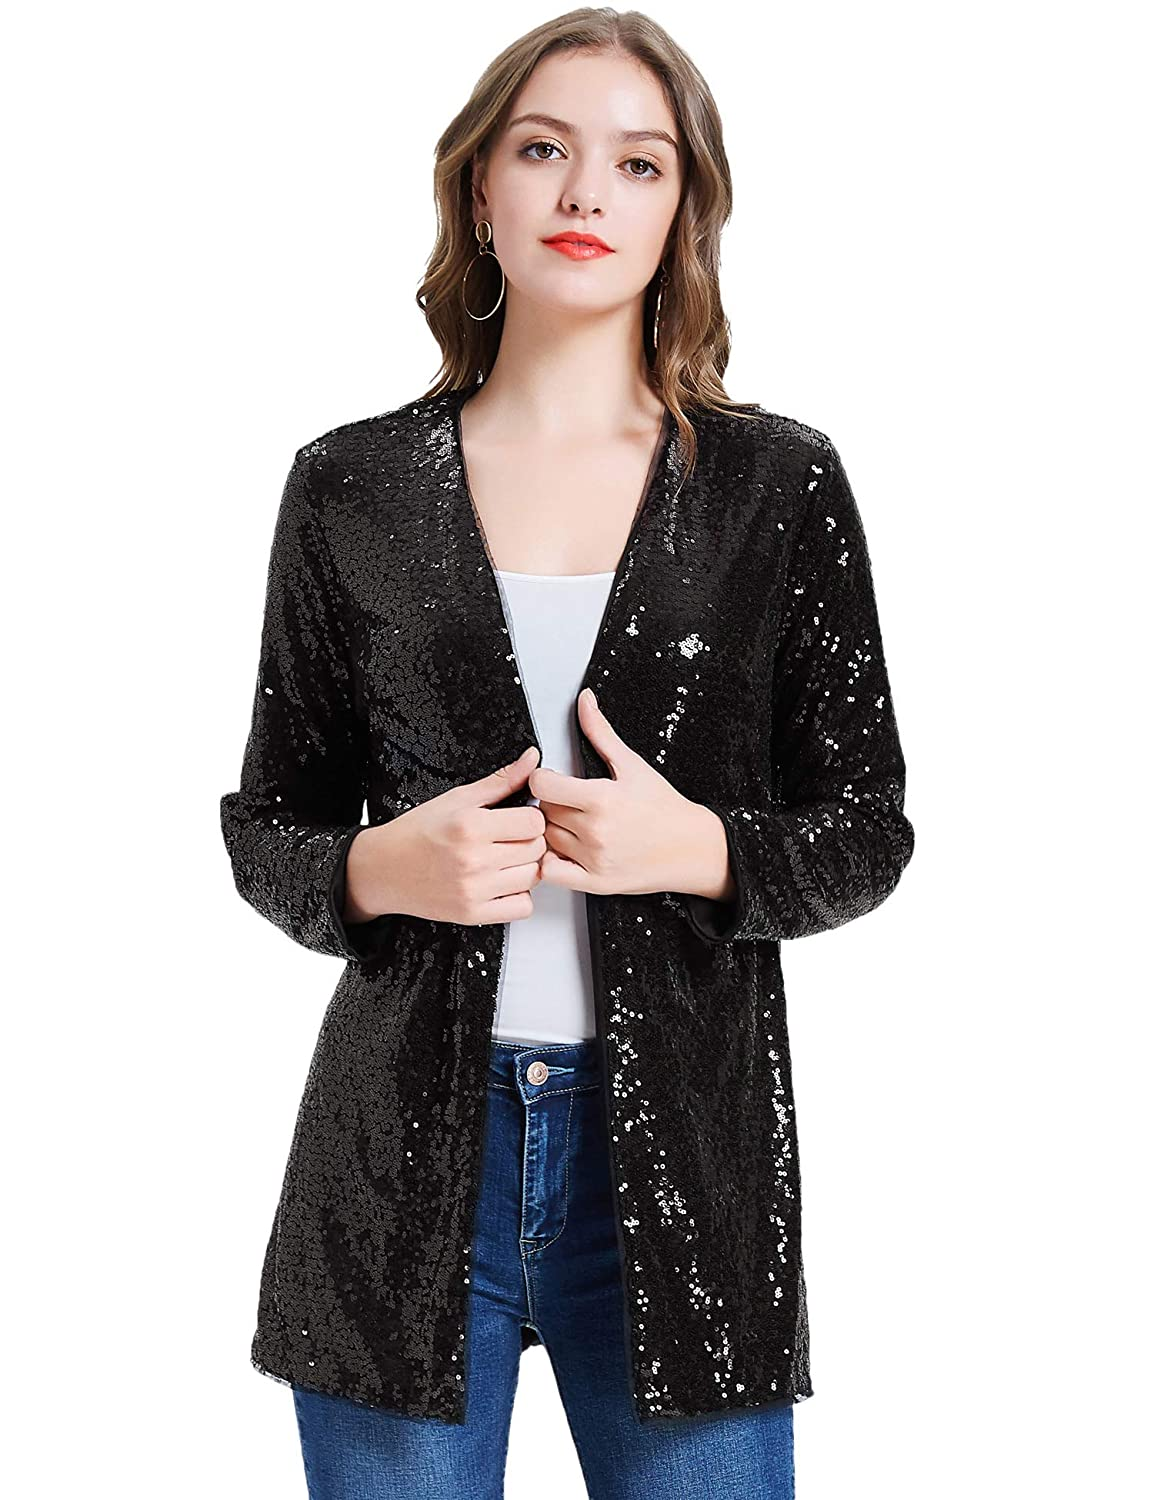 KANCY KOLE Womens Sequin Jacket Open Front Blazer Casual Long Sleeve Cardigan Coat S-XXL